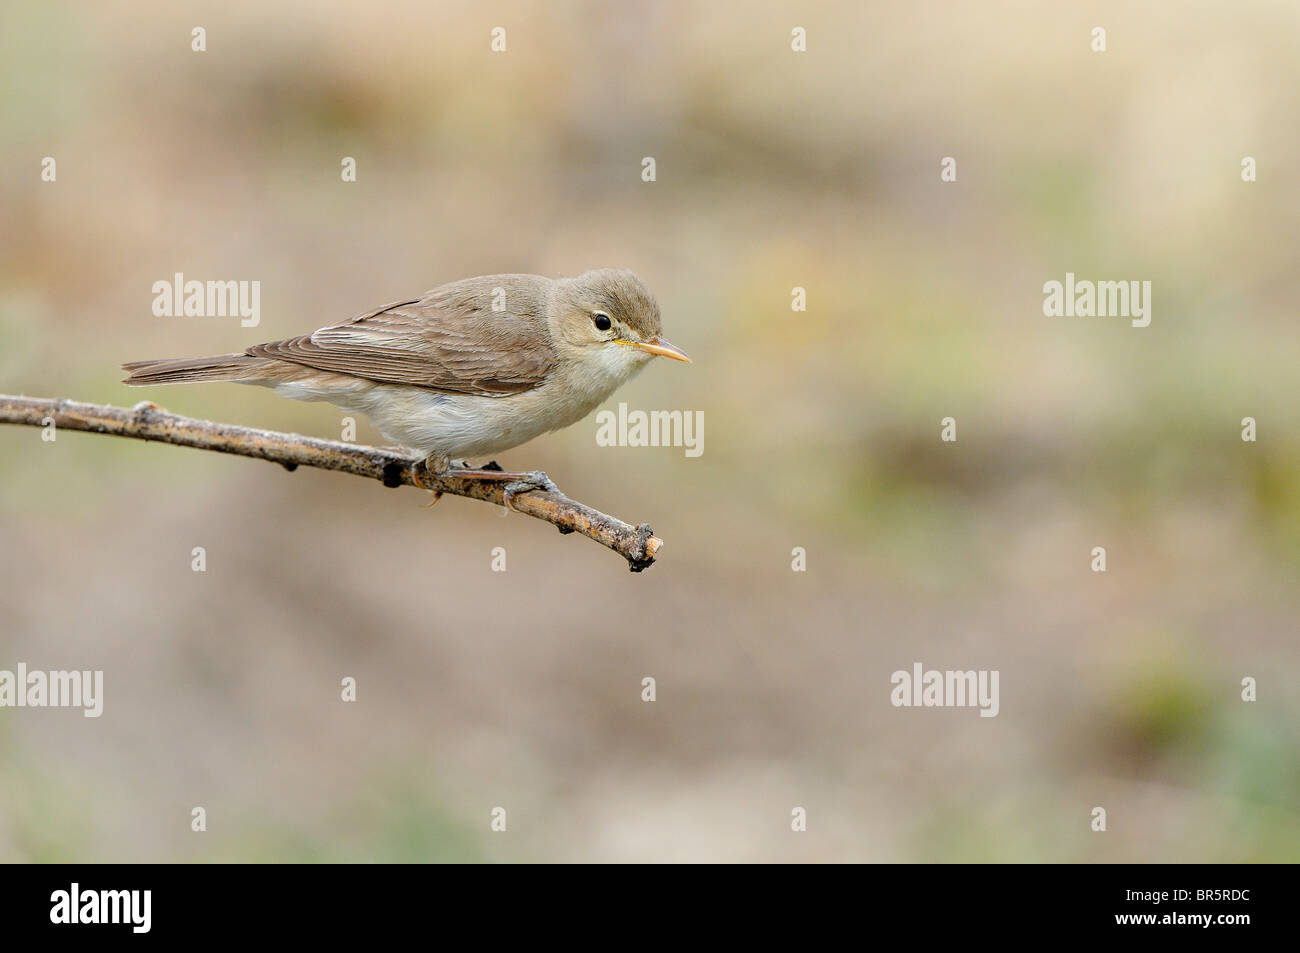 Olivaceous Warbler (Hippolais pallida) perched on twig, Bulgaria - Stock Image